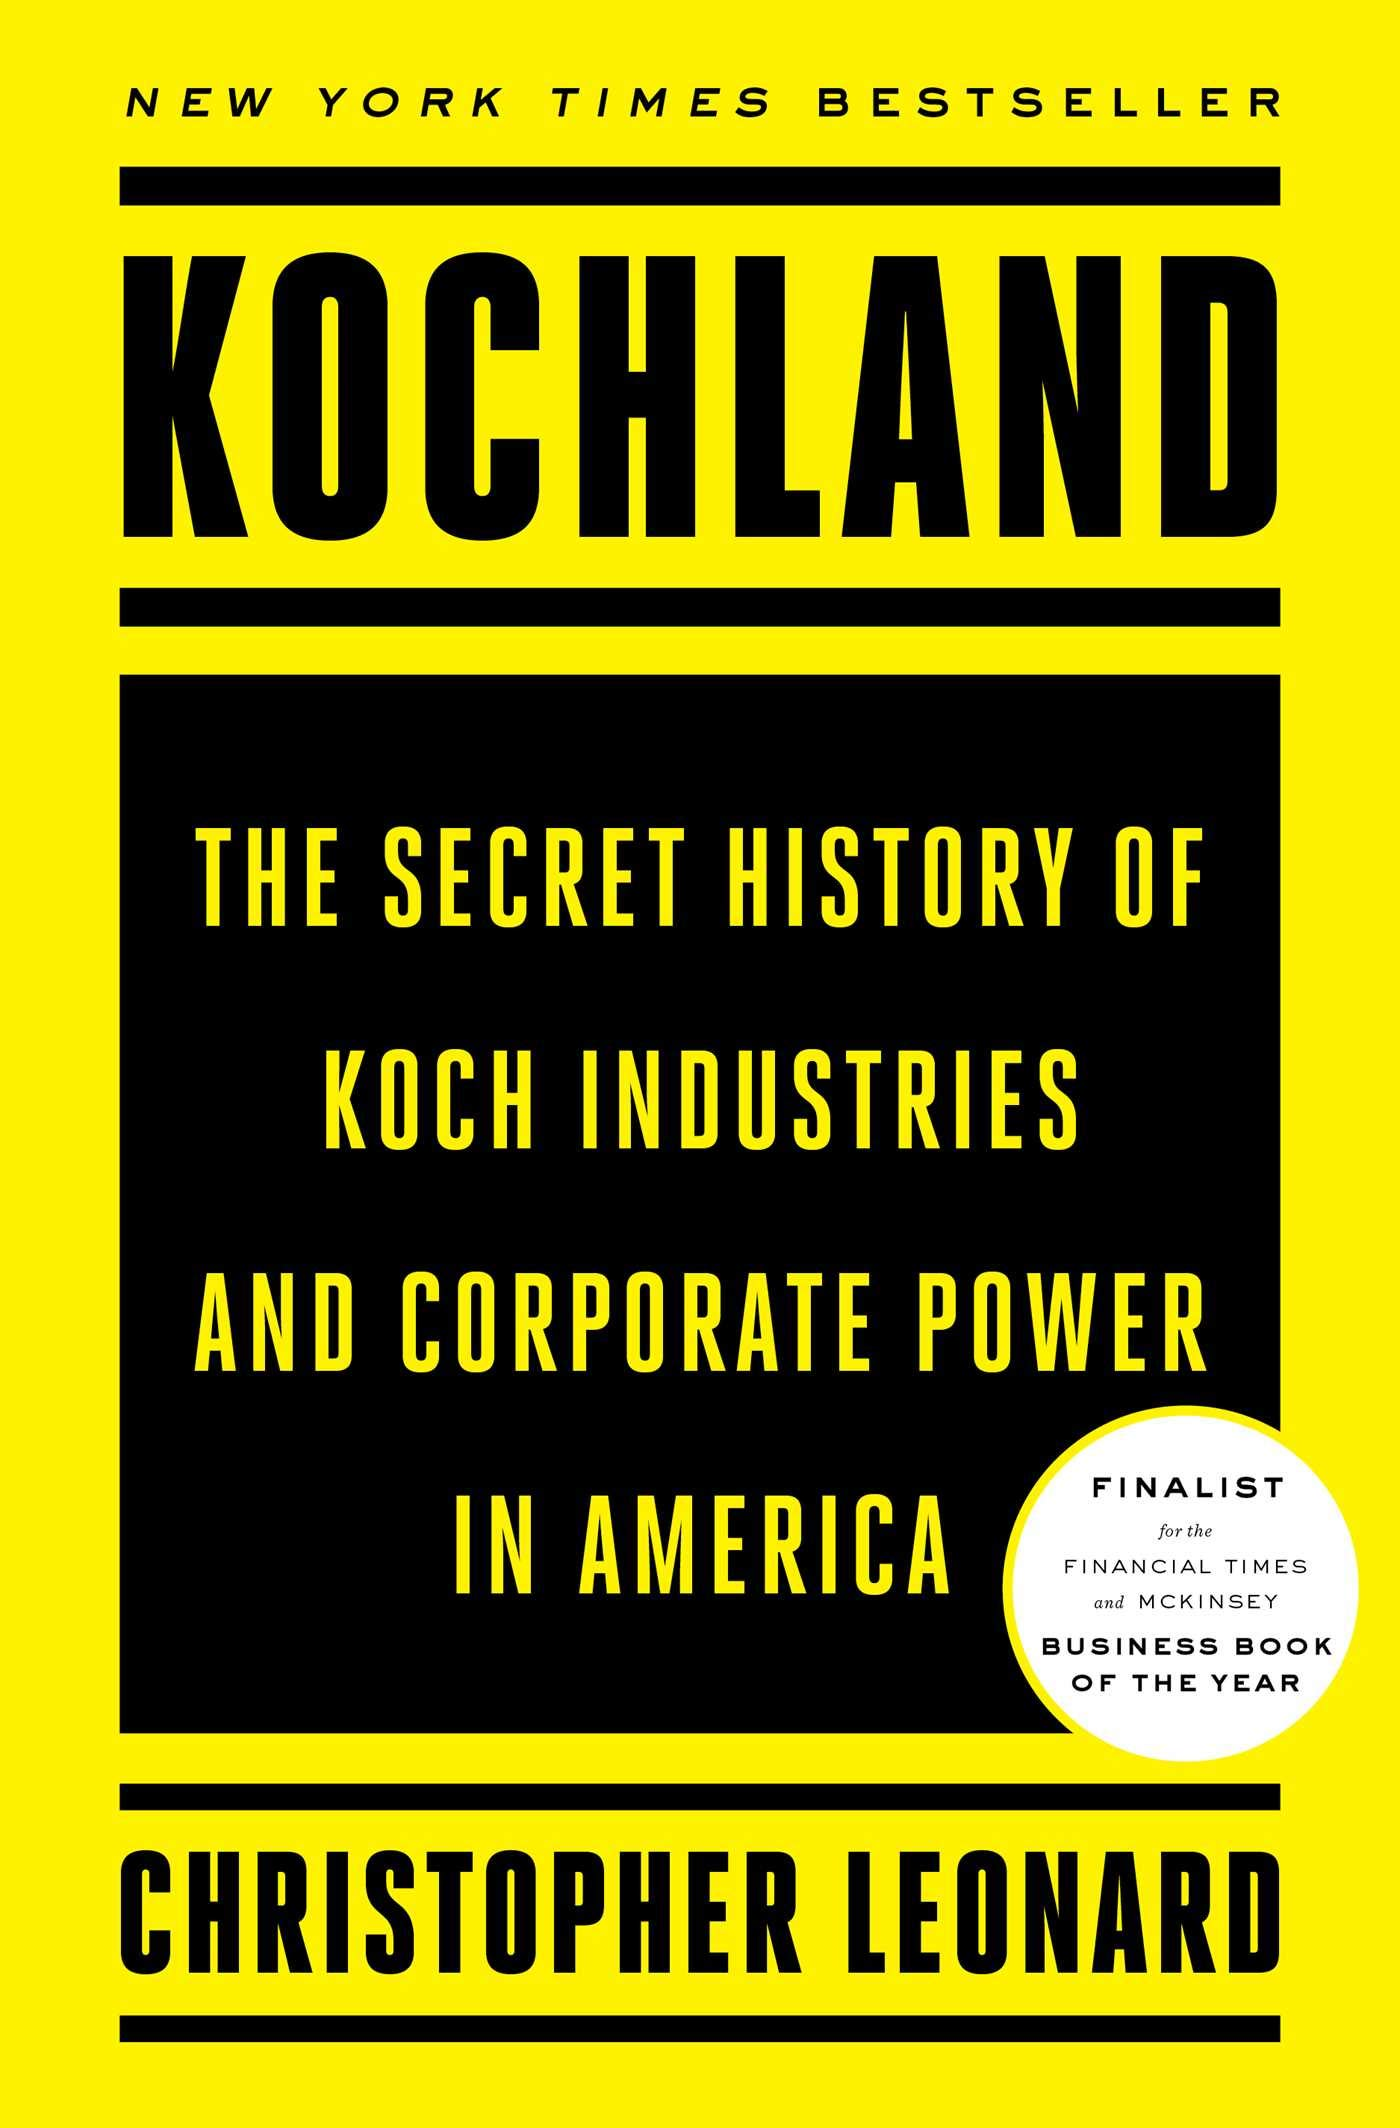 Kochland: The Secret History of Koch Industries and Corporate Power in America by Simon & Schuster